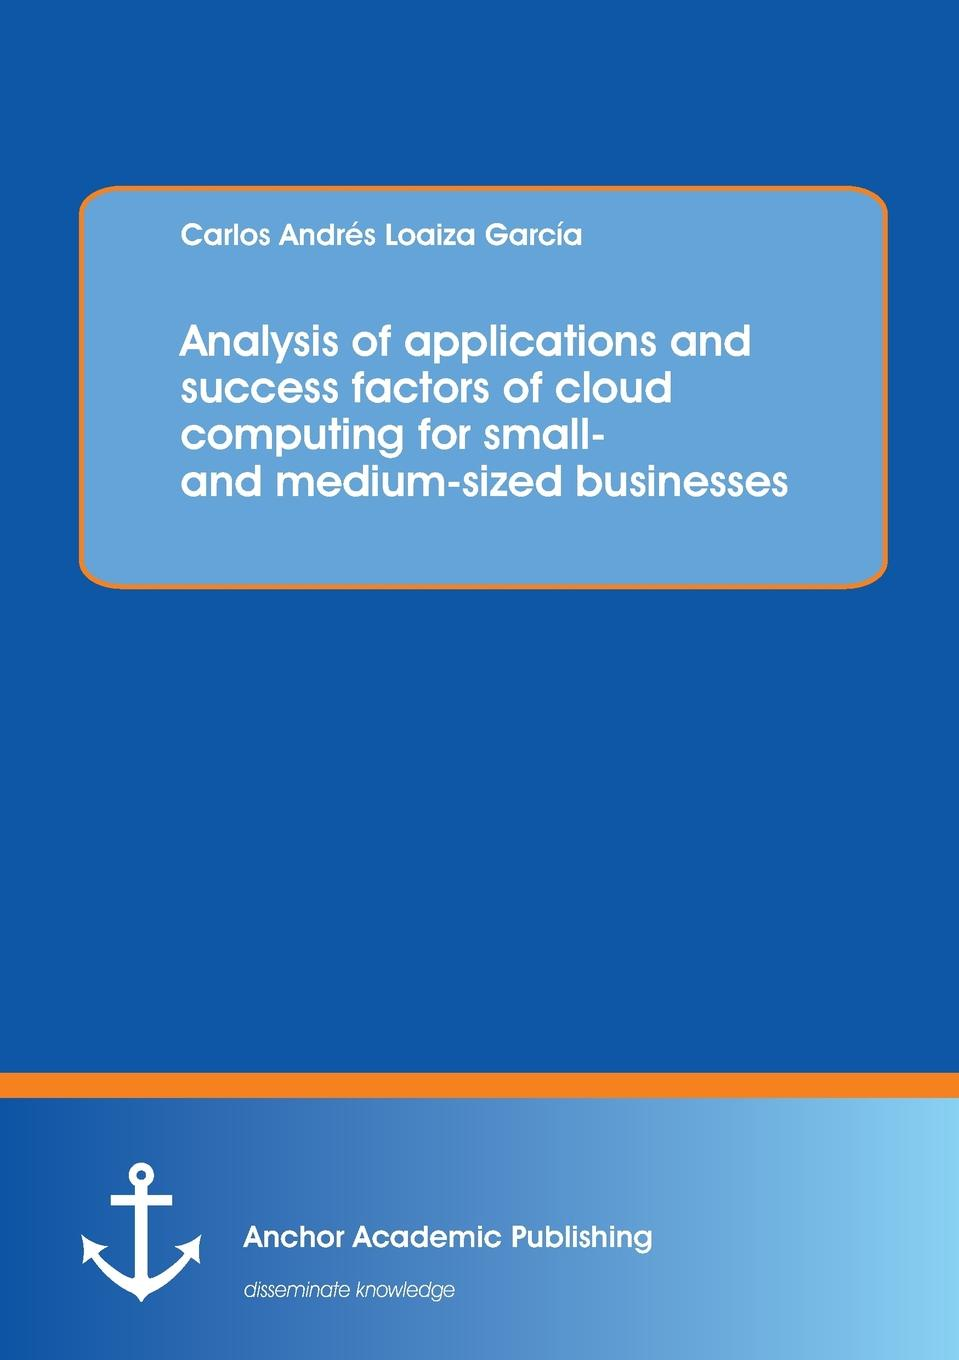 Carlos Loaiza Analysis of applications and success factors of cloud computing for small- and medium-sized businesses activity based costing making it work for small and mid sized companies